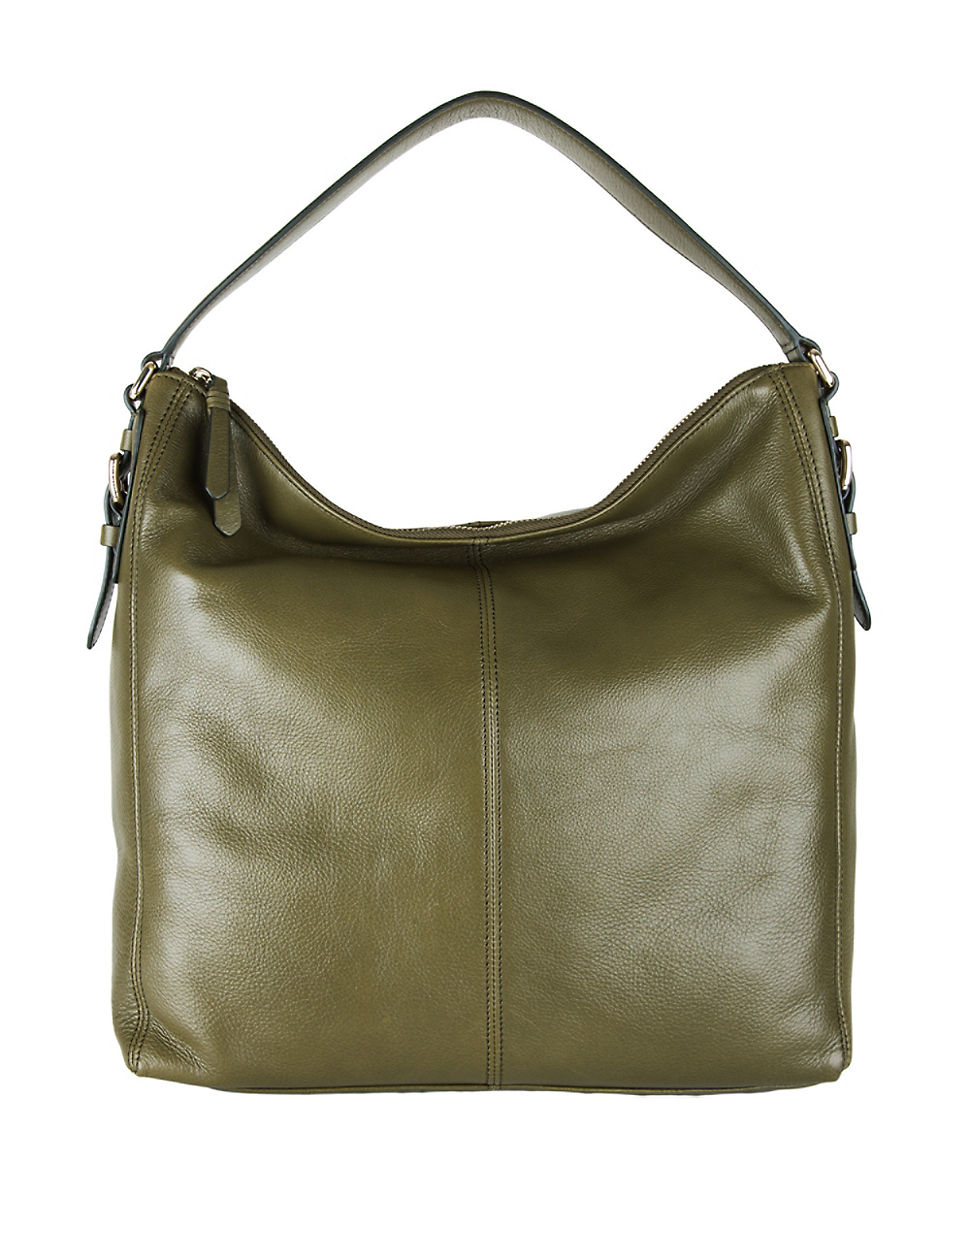 10259c3d446 Cole Haan Rockland Leather Hobo Bag in Green - Lyst